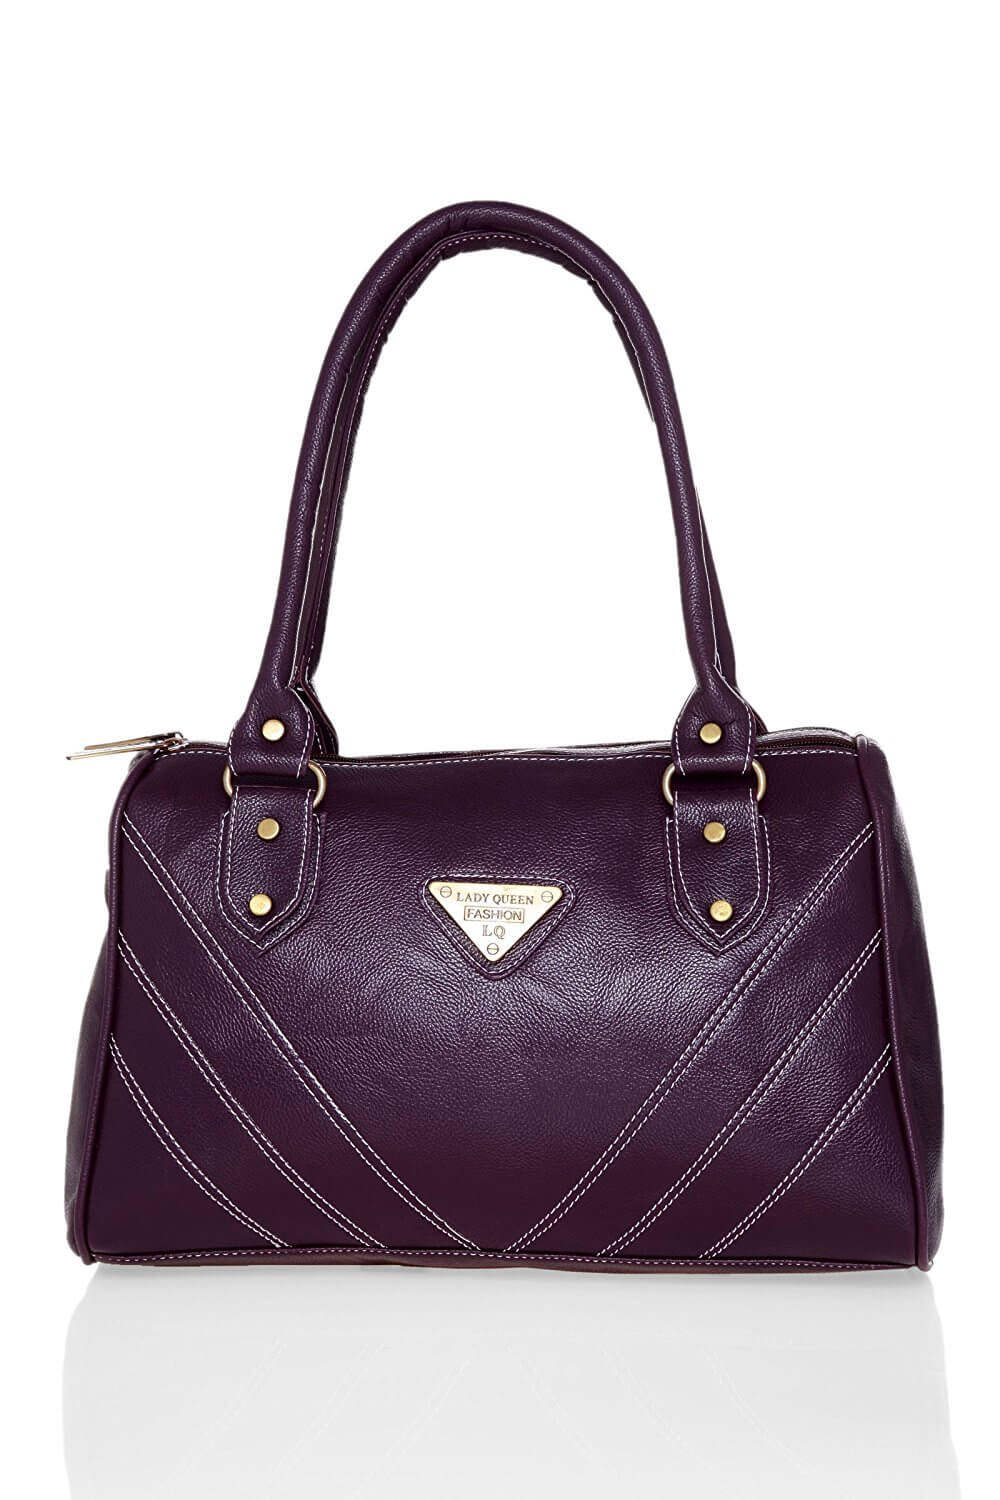 Lady queen casual bag LD-321